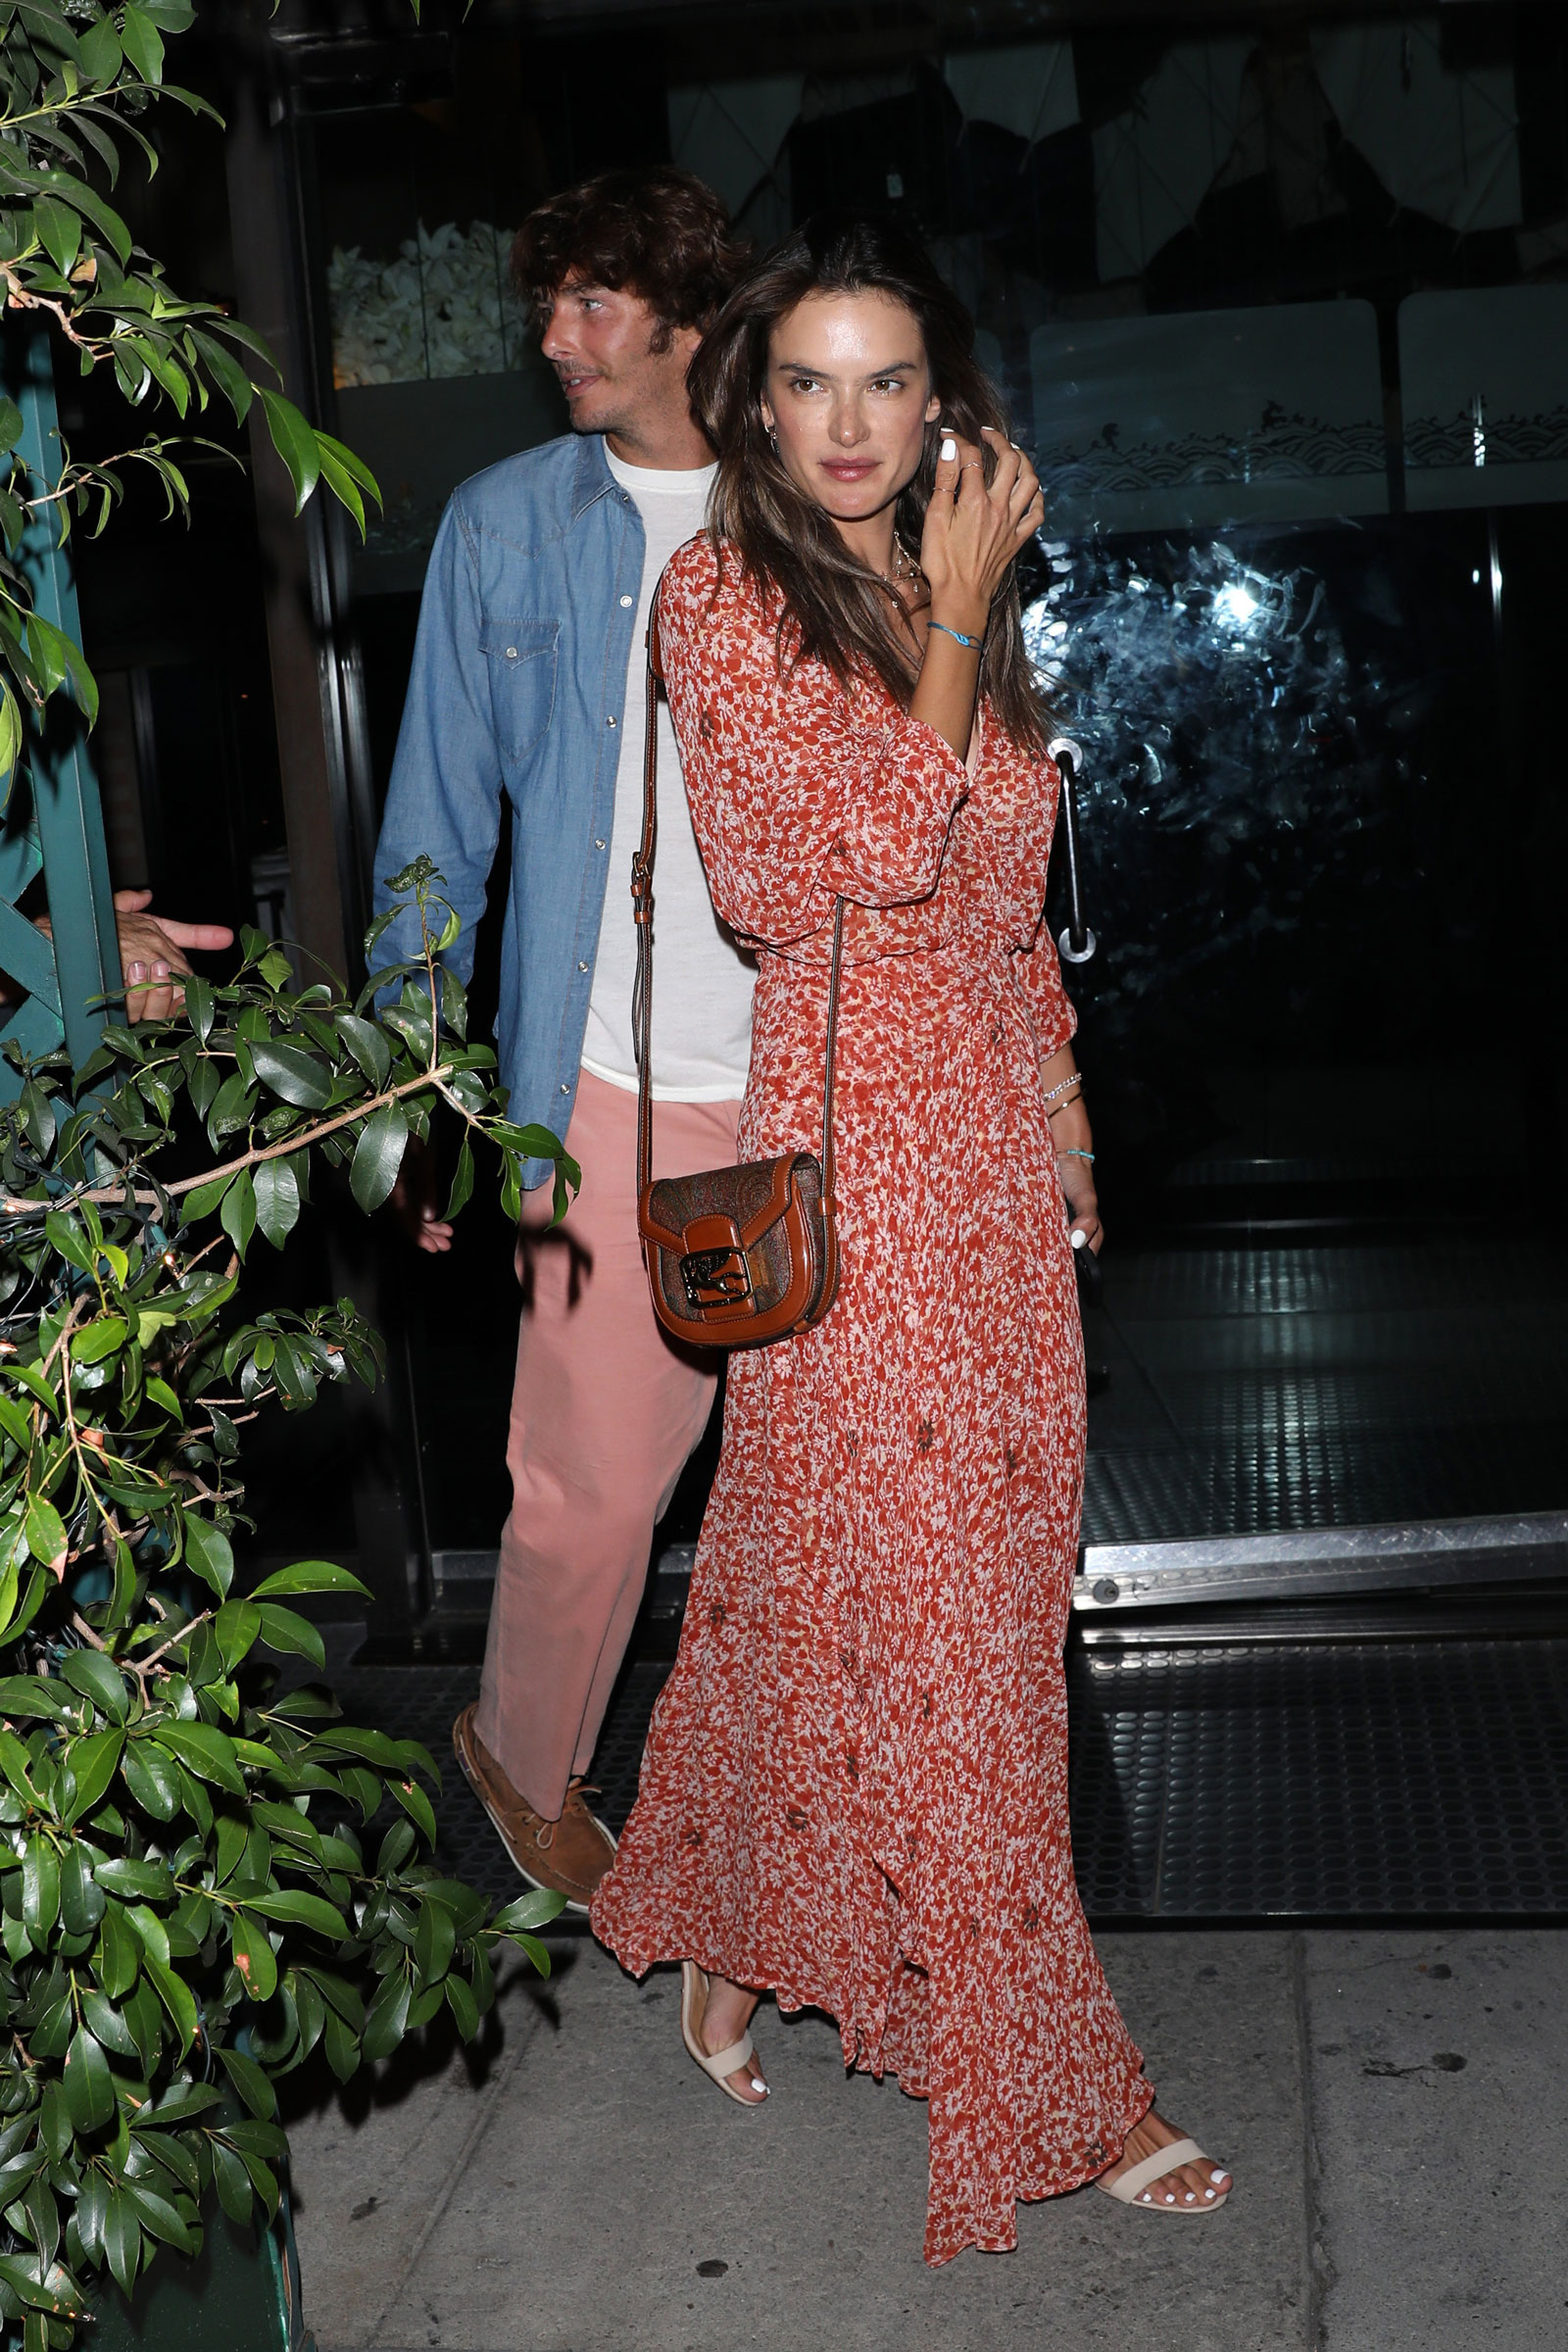 Alessandra Ambrosio Red Floral Dress